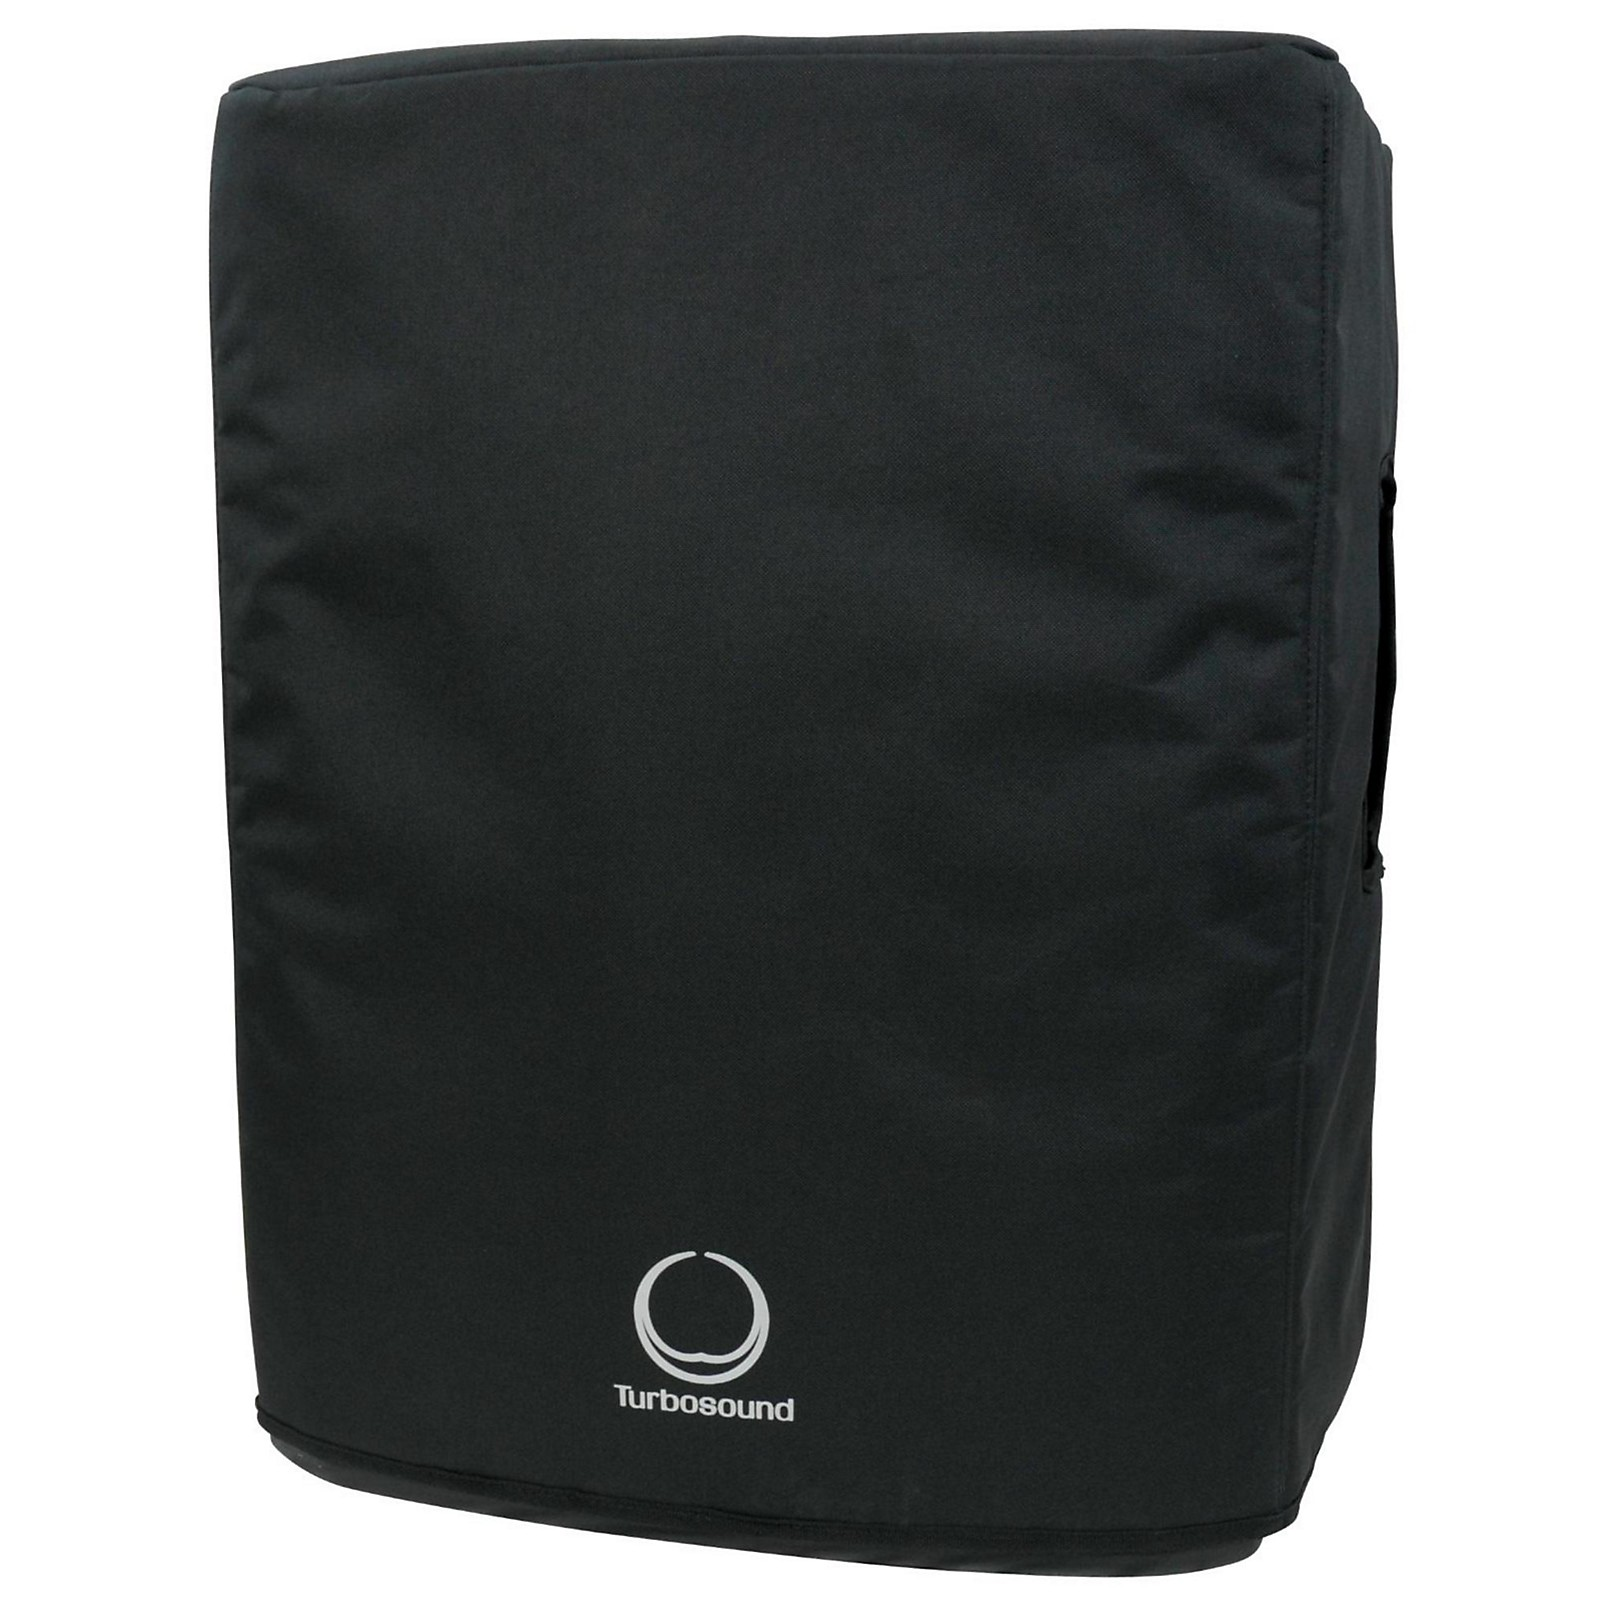 Turbosound TS-PC15B-1 Deluxe Water Resistant Protective Cover for 15